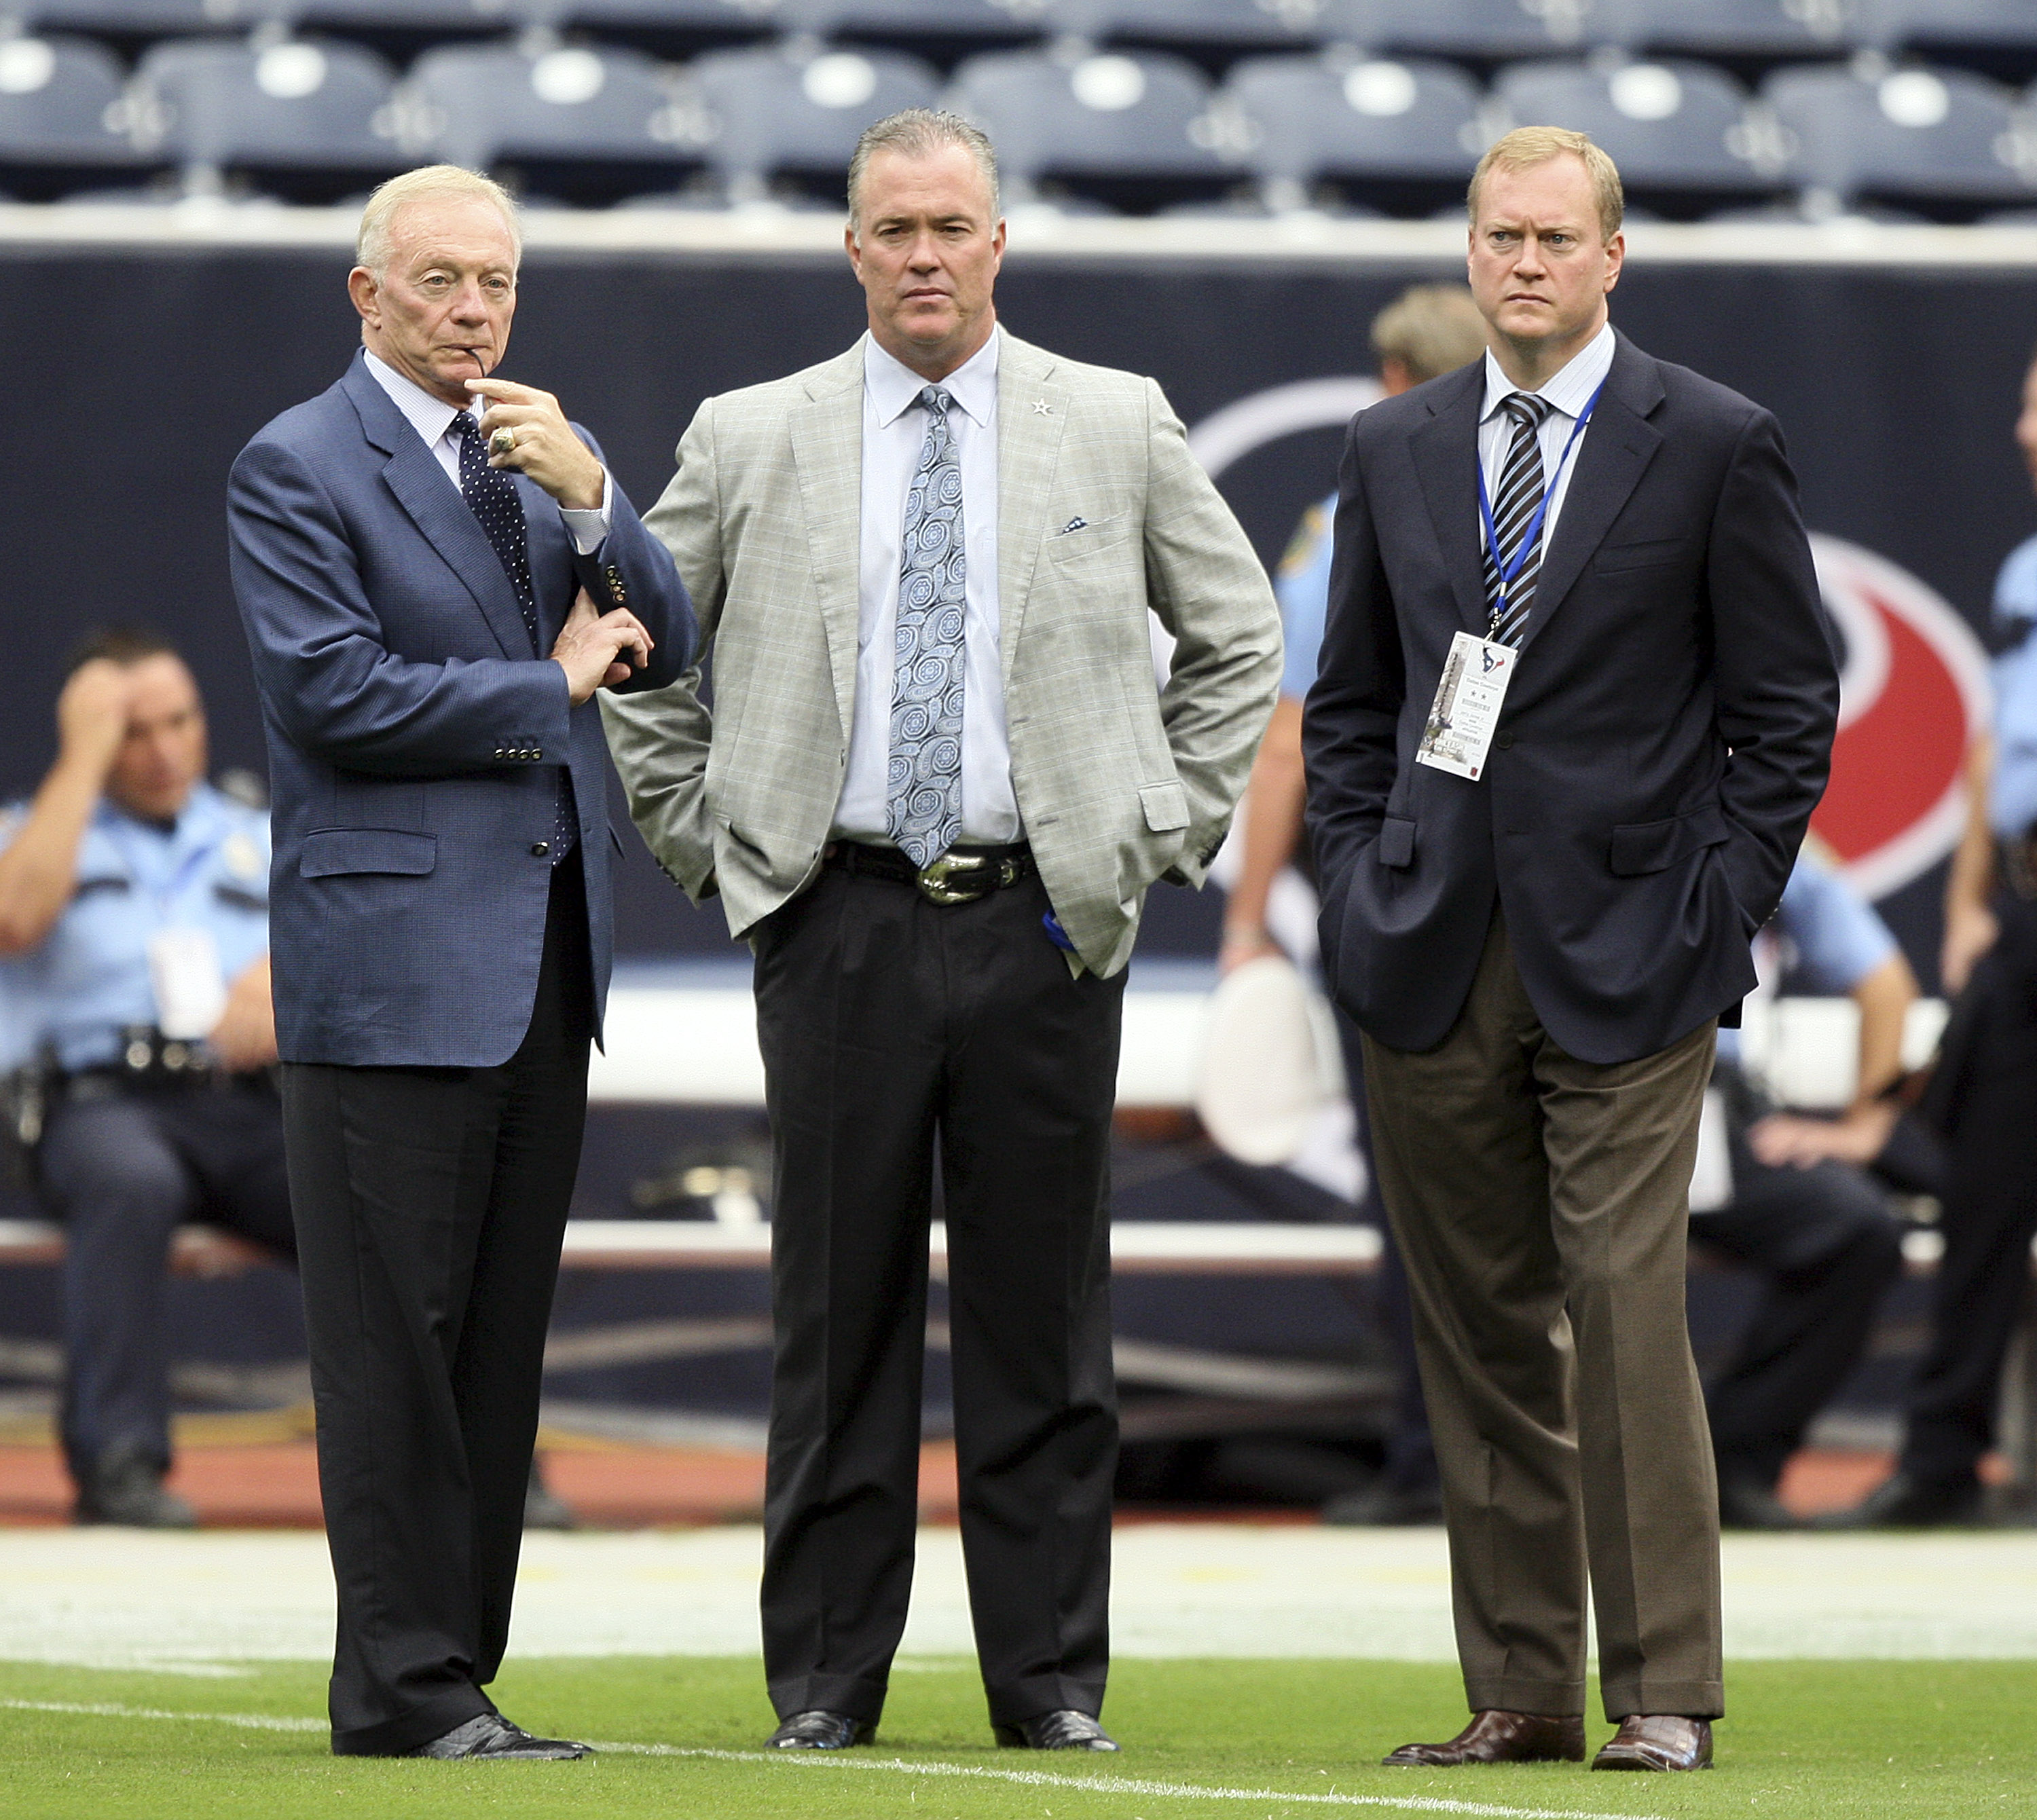 HOUSTON - SEPTEMBER 26:  Dallas Cowboys owner Jerry Jones, left, watches warm ups prior to a game against the Houston Texans with this sons Stephen, center, and Jerry Jr. at Reliant Stadium on September 26, 2010 in Houston, Texas.  (Photo by Bob Levey/Get